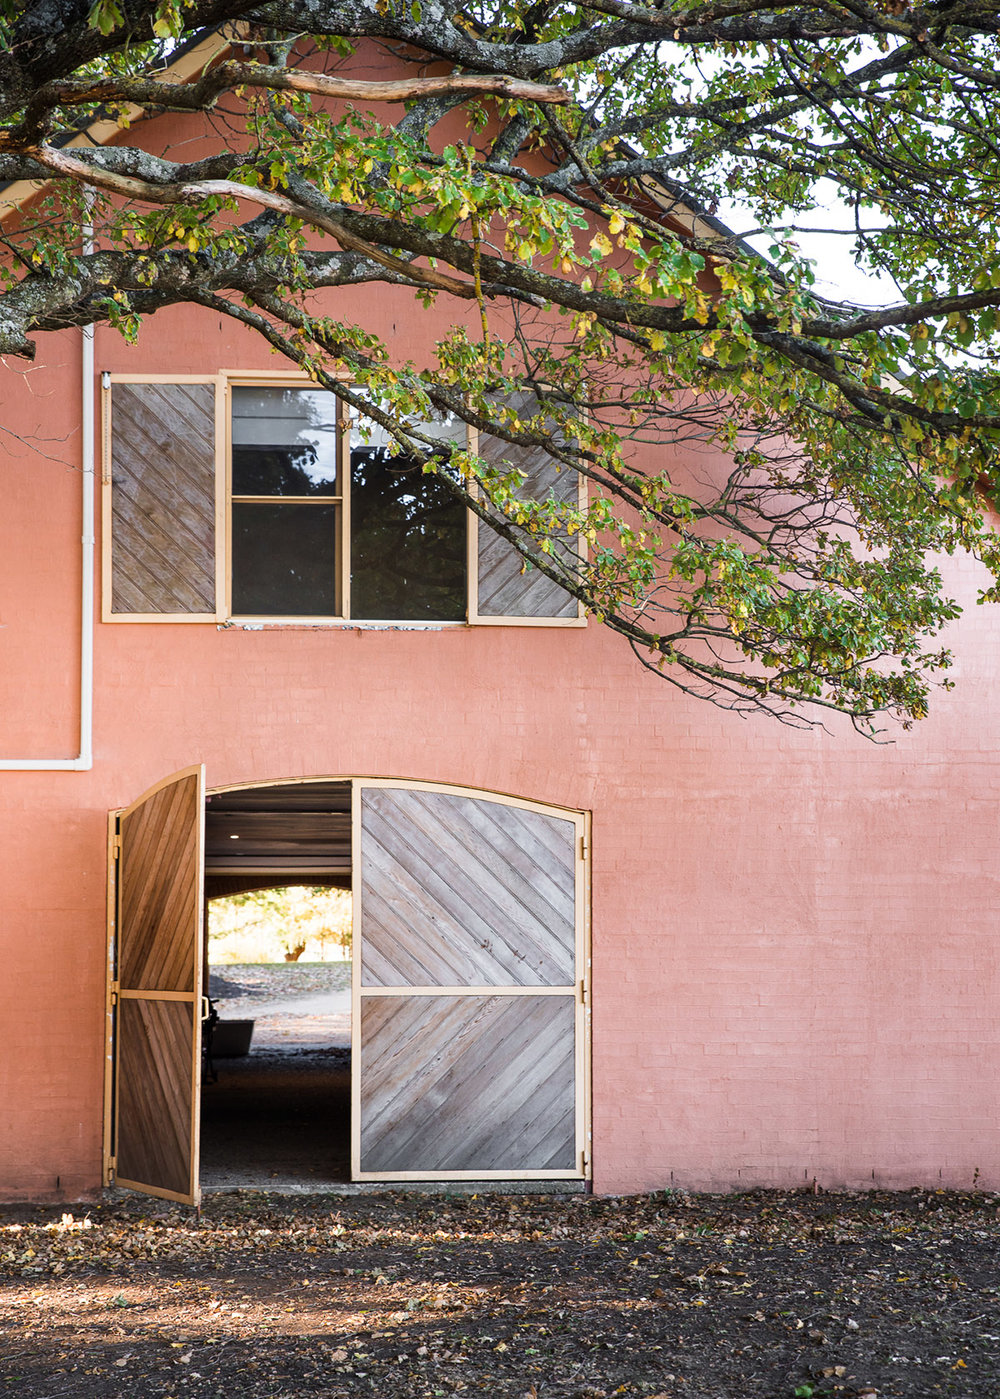 The Stable doors and farm life at Mona Farm